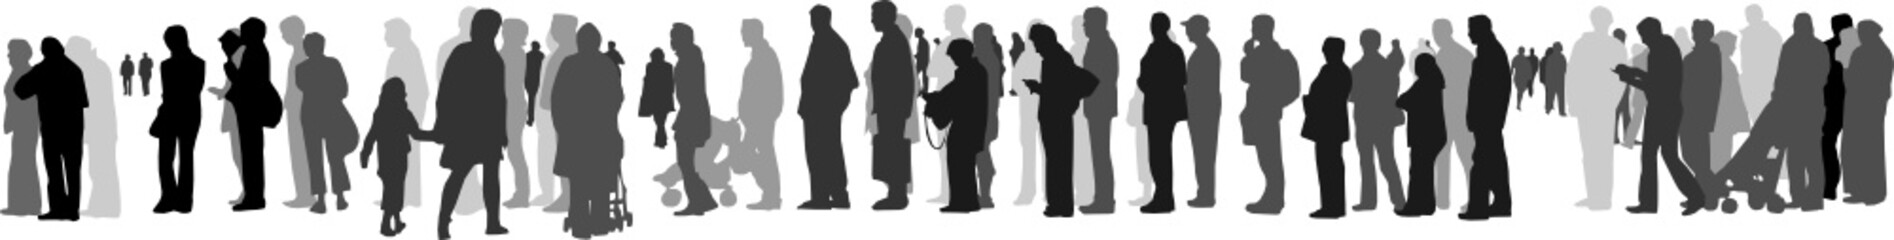 people waiting in queue silhouette vector